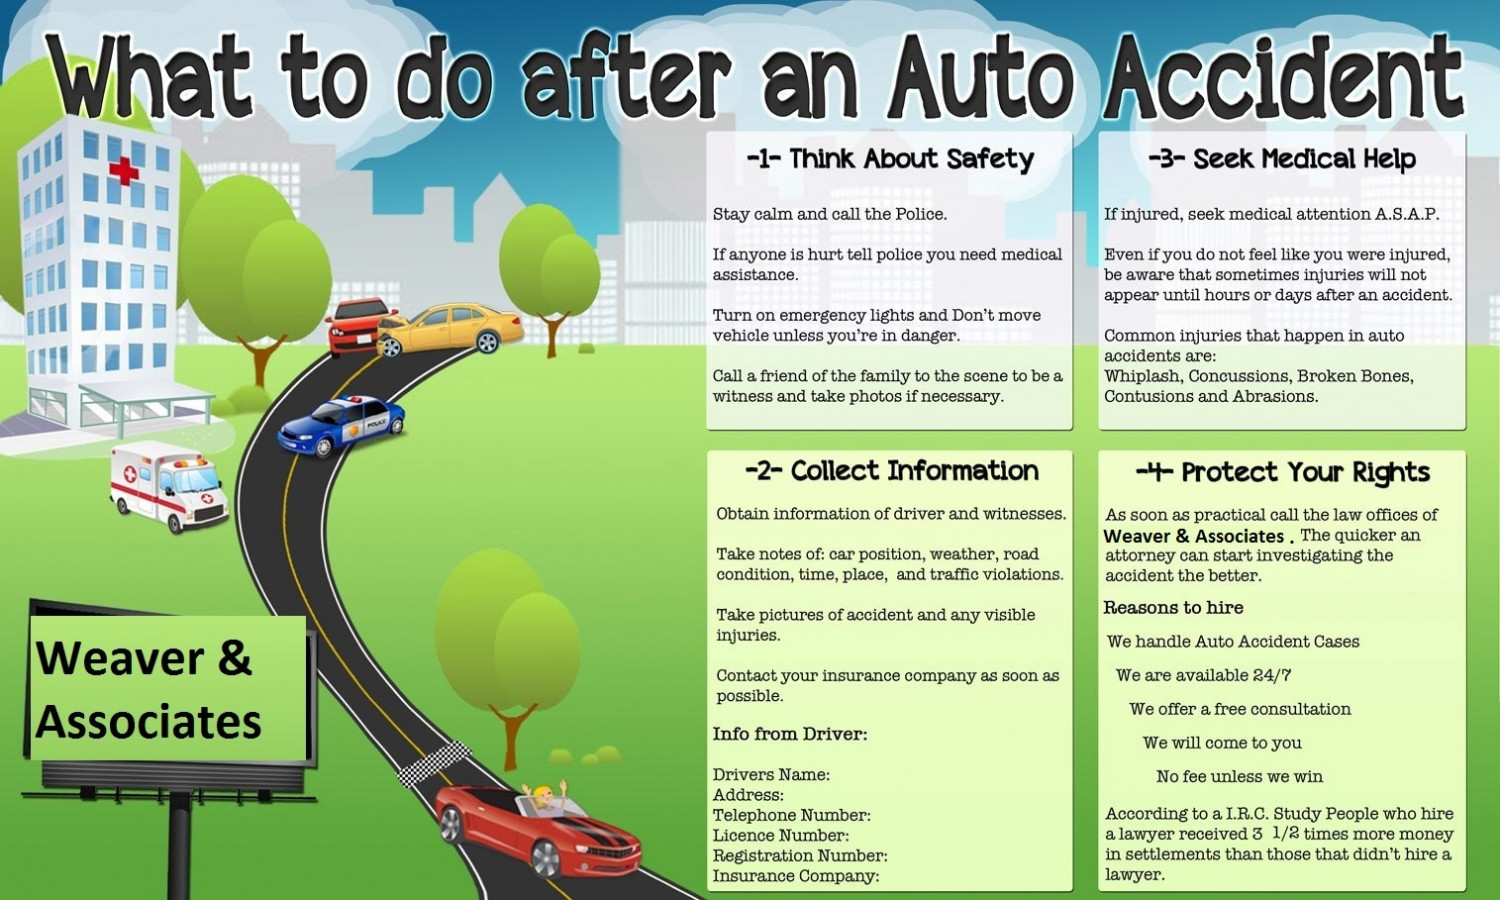 What to Do After a Car Accident Infographic